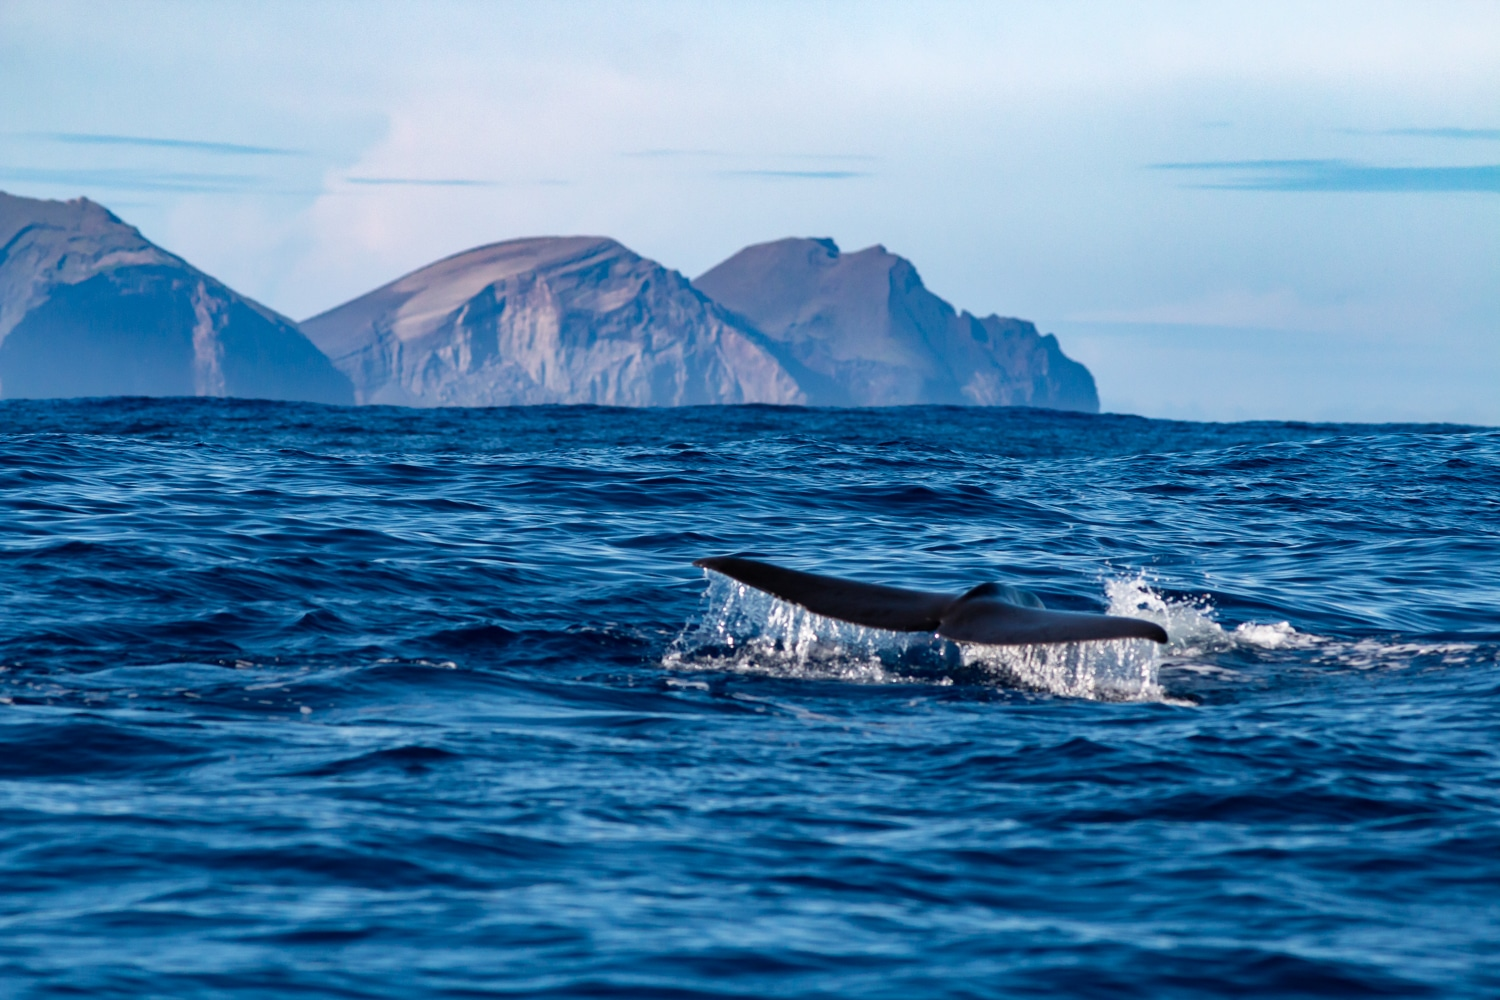 Voyage photo - Le Grand Cachalot des Açores © Wild Seas Explorer